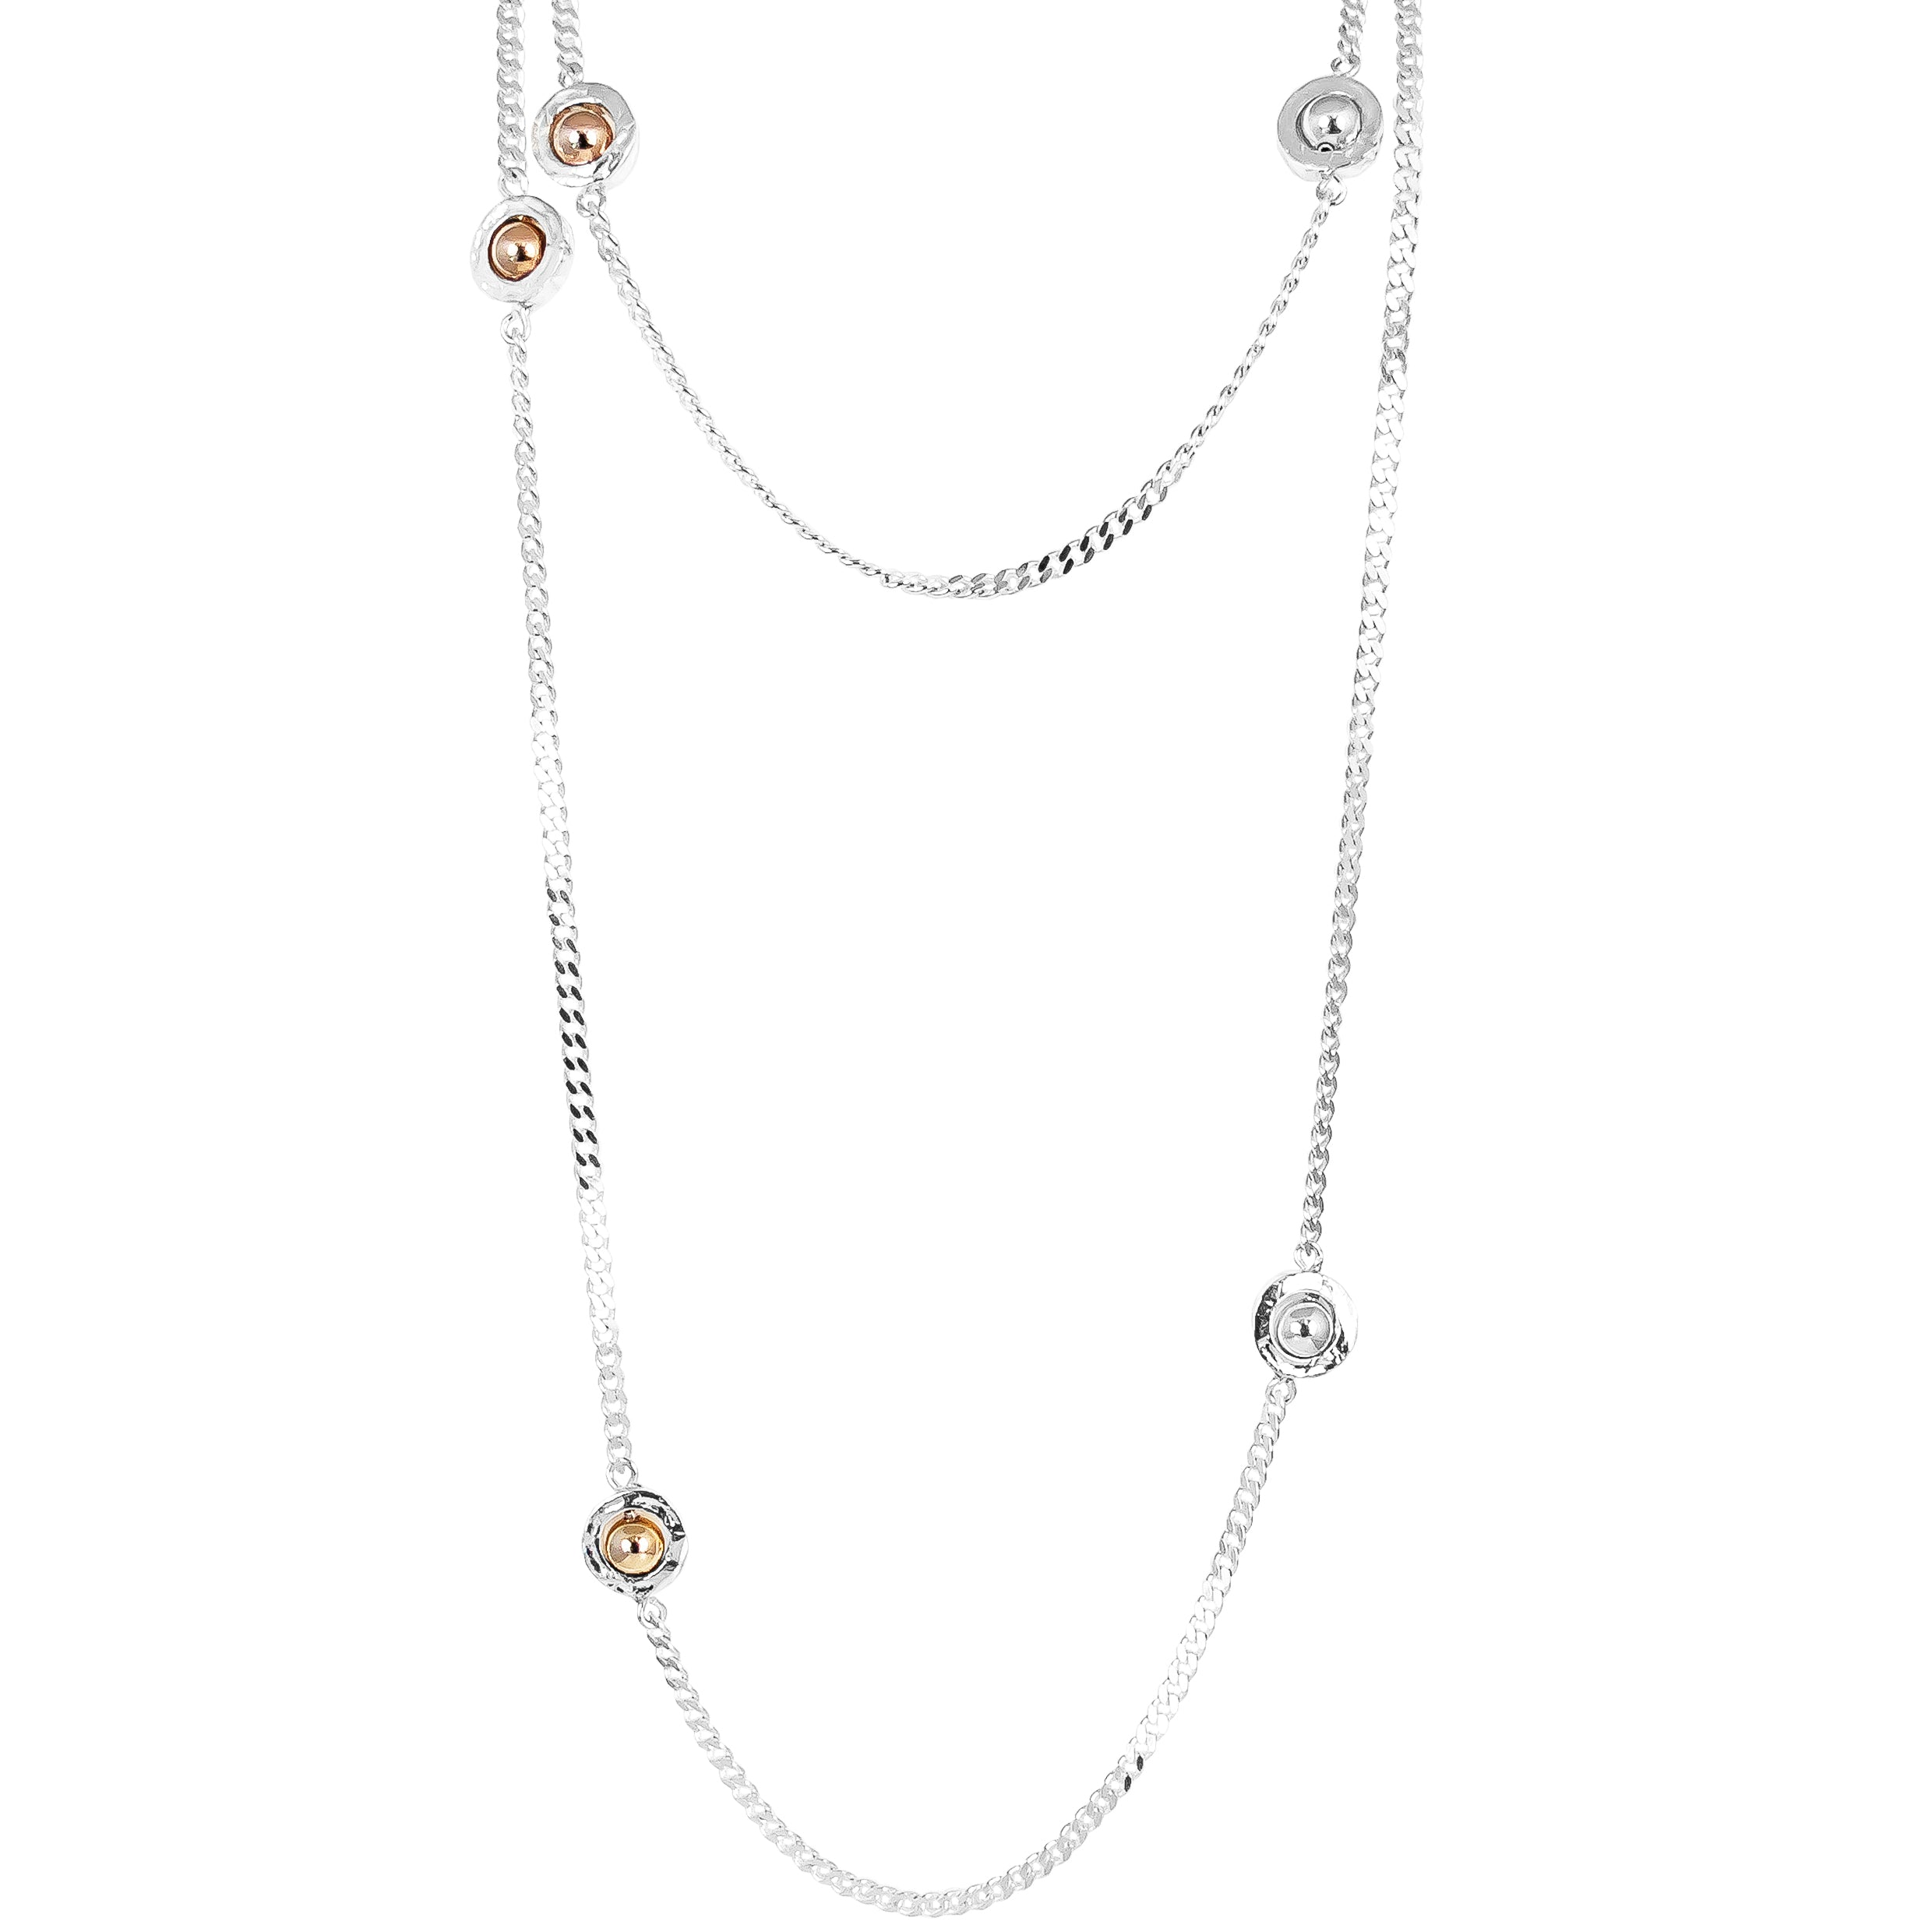 Atticus Multi Feature Statement Chain Necklace - Long | Polished Gold, Rose And Silver Detail